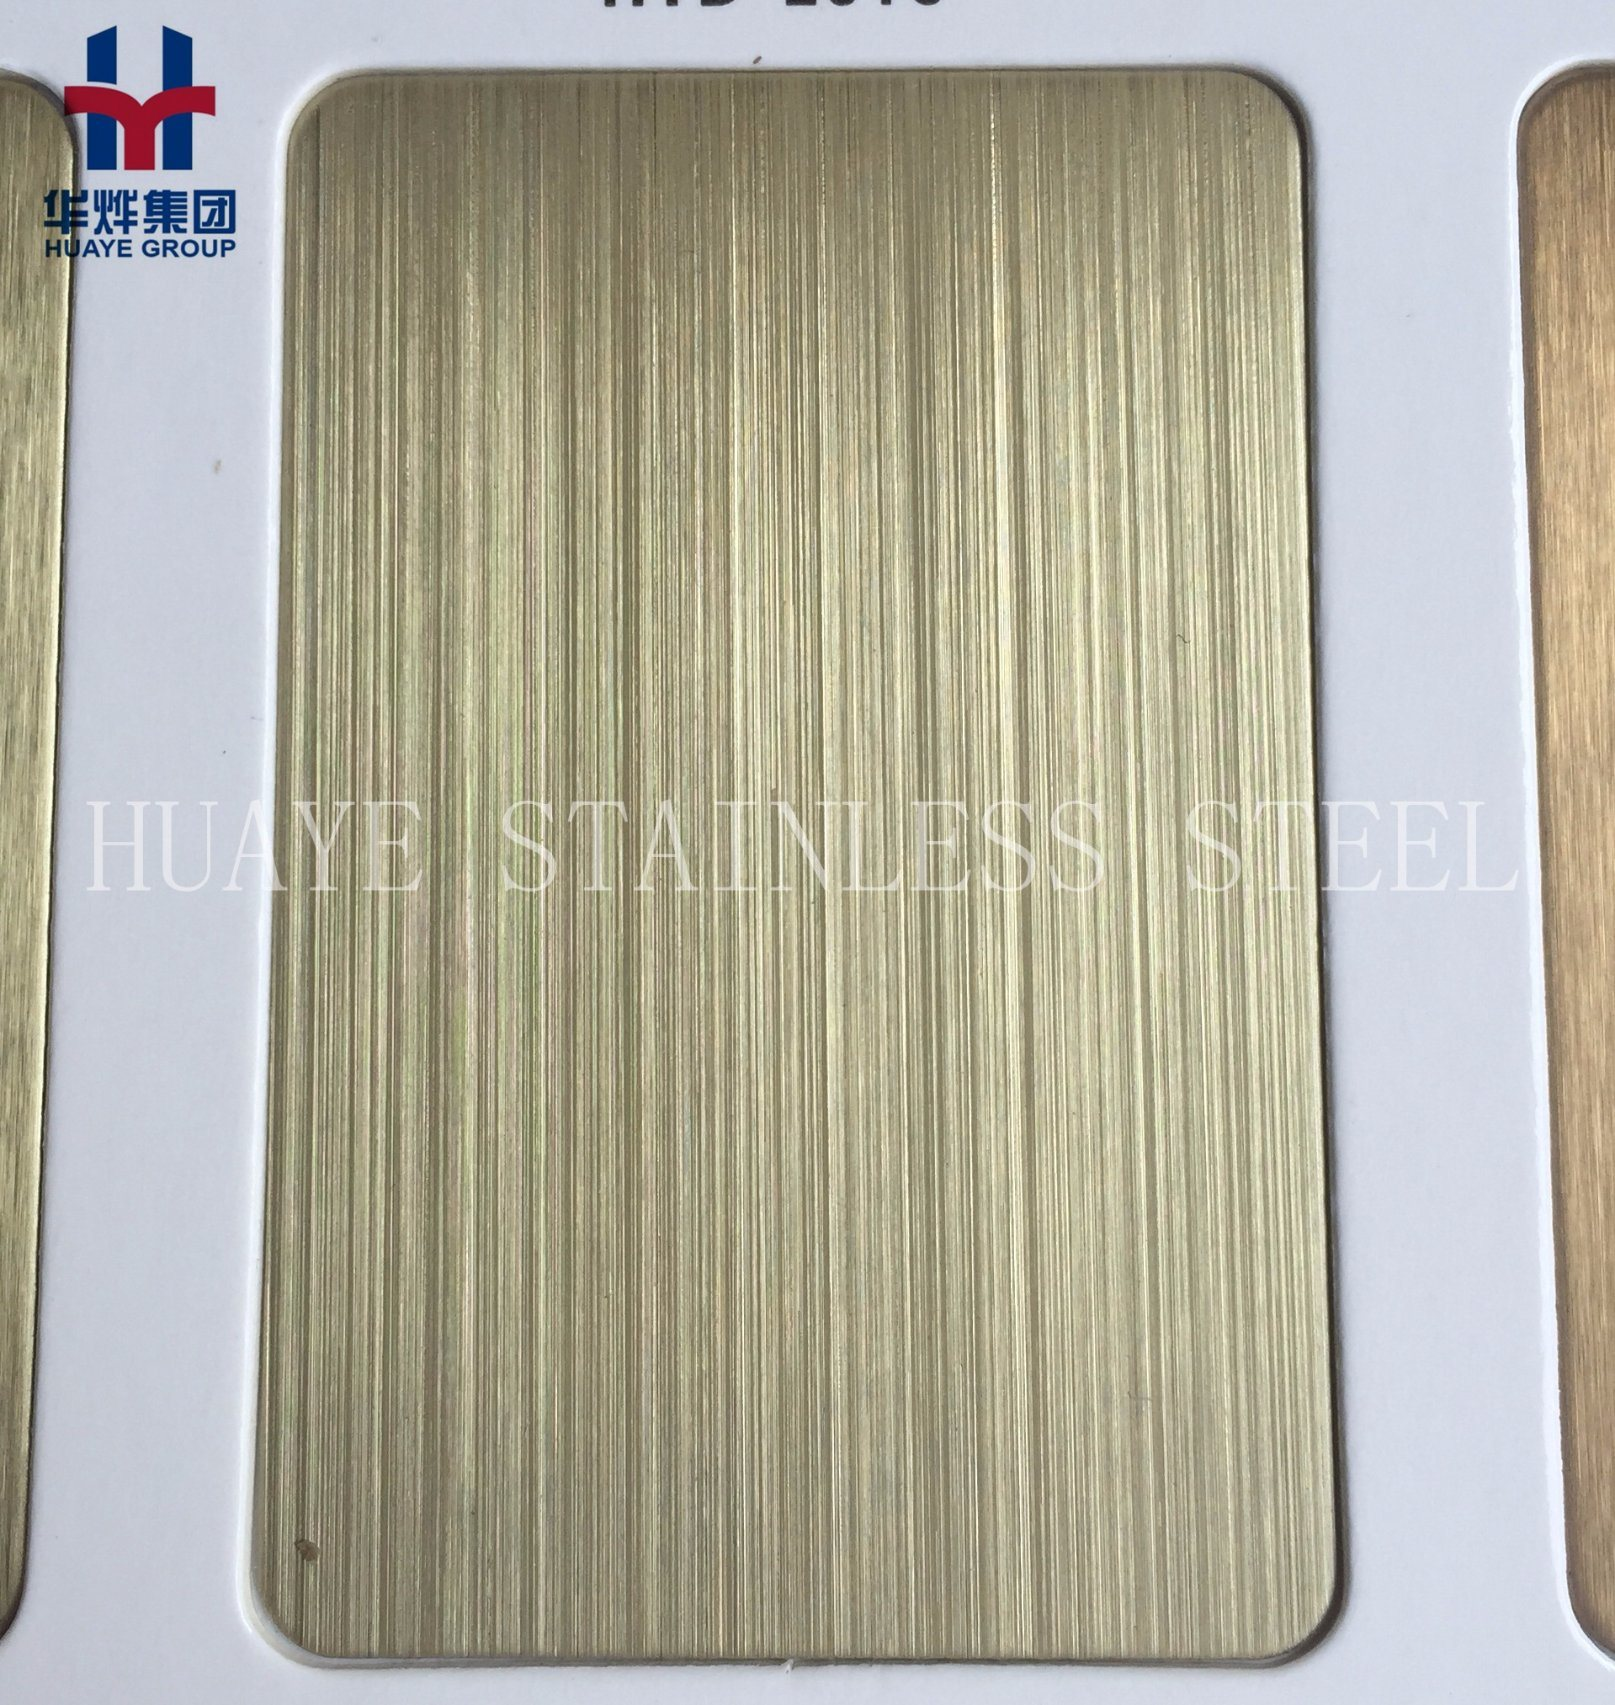 China High Quality Gold Colored Stainless Steel Decorative Plate Sheet Hairline Brushed Satin Photos Pictures Made In China Com,Sage And Lavender Color Scheme